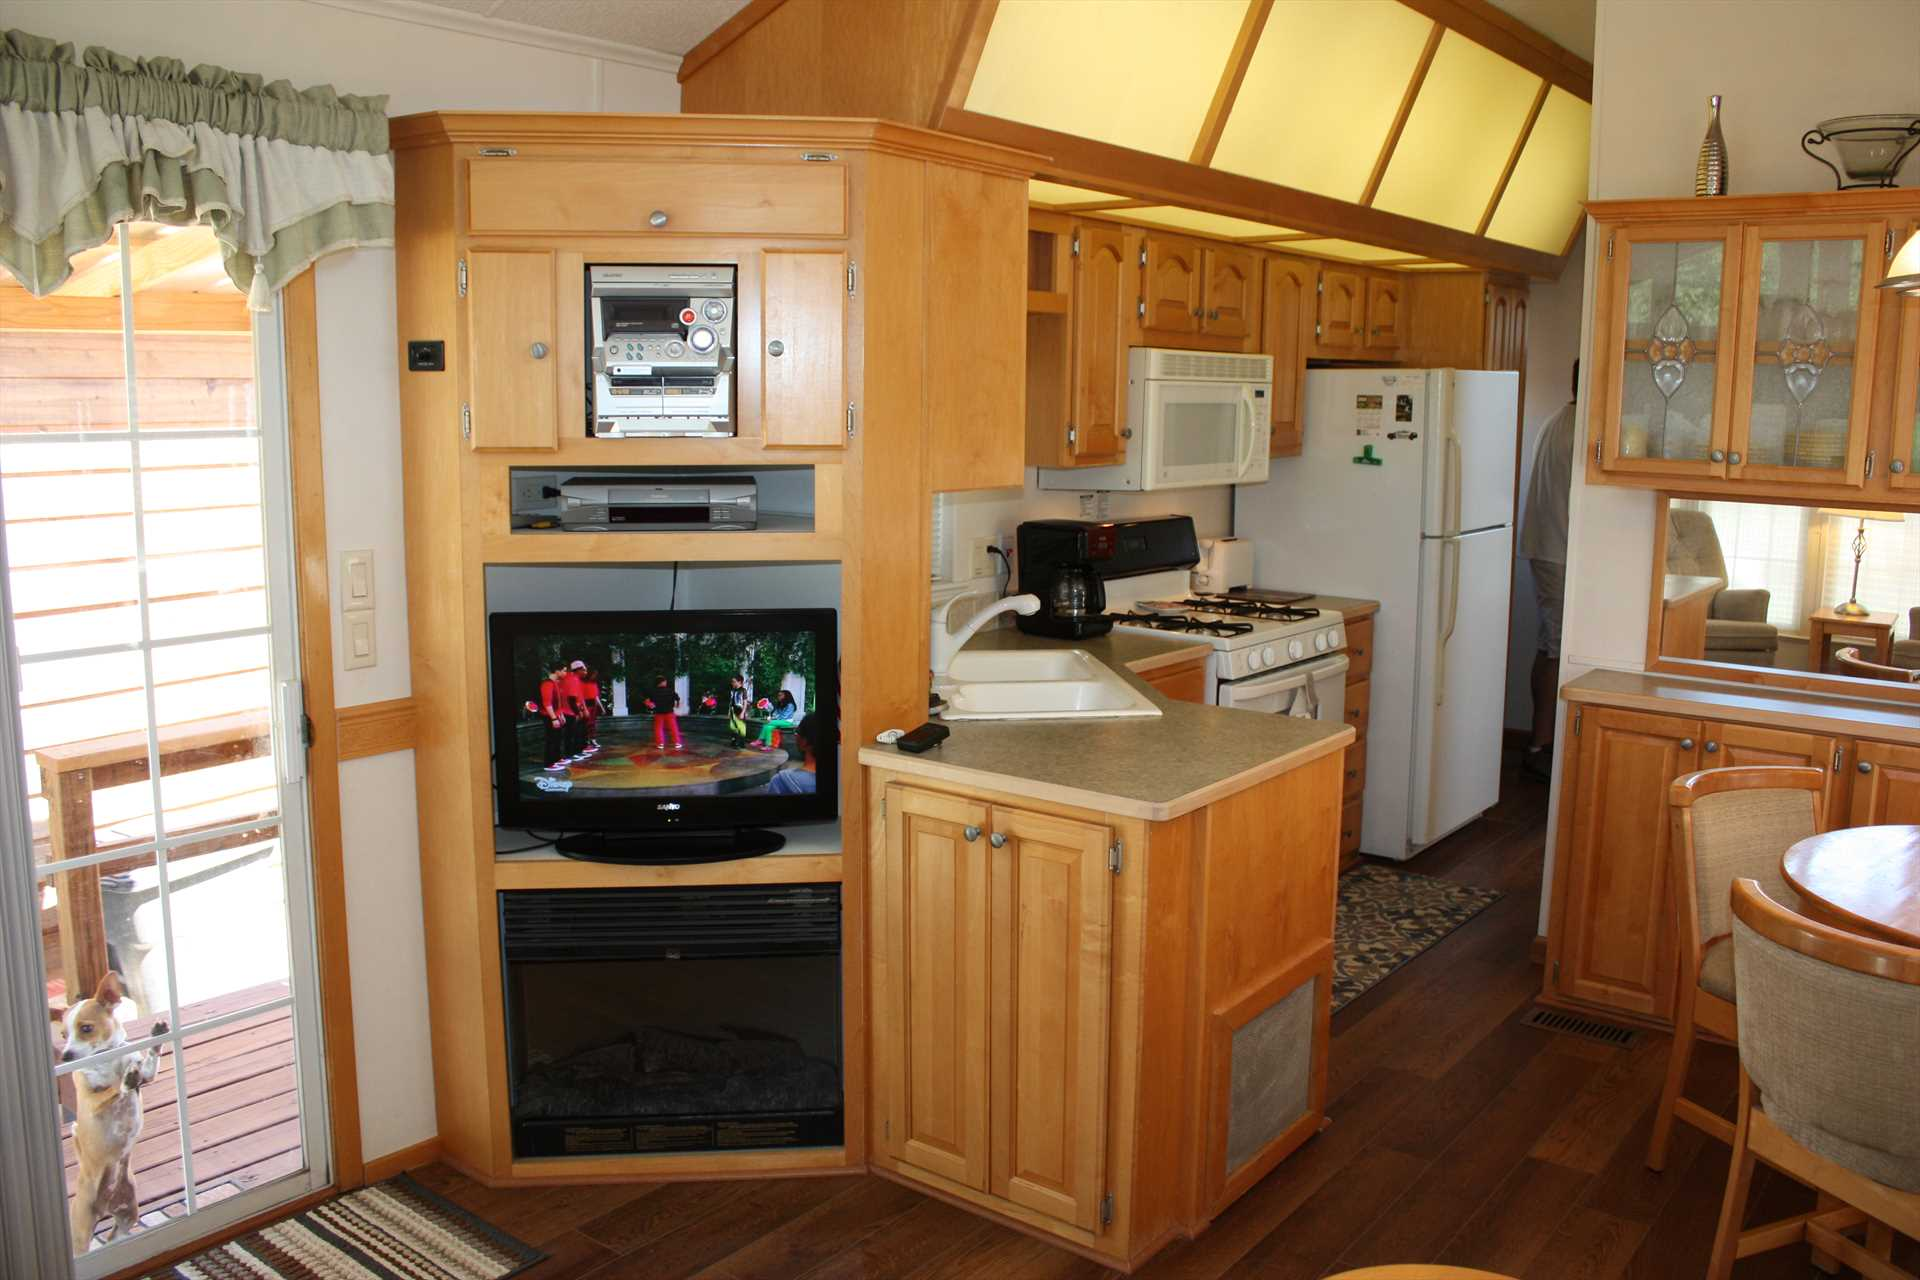 Satellite TV, Wifi, great cell service, and central air and heat will make your visit here both comfortable and entertaining. The living area also includes a sleeper sofa for two additional guests!